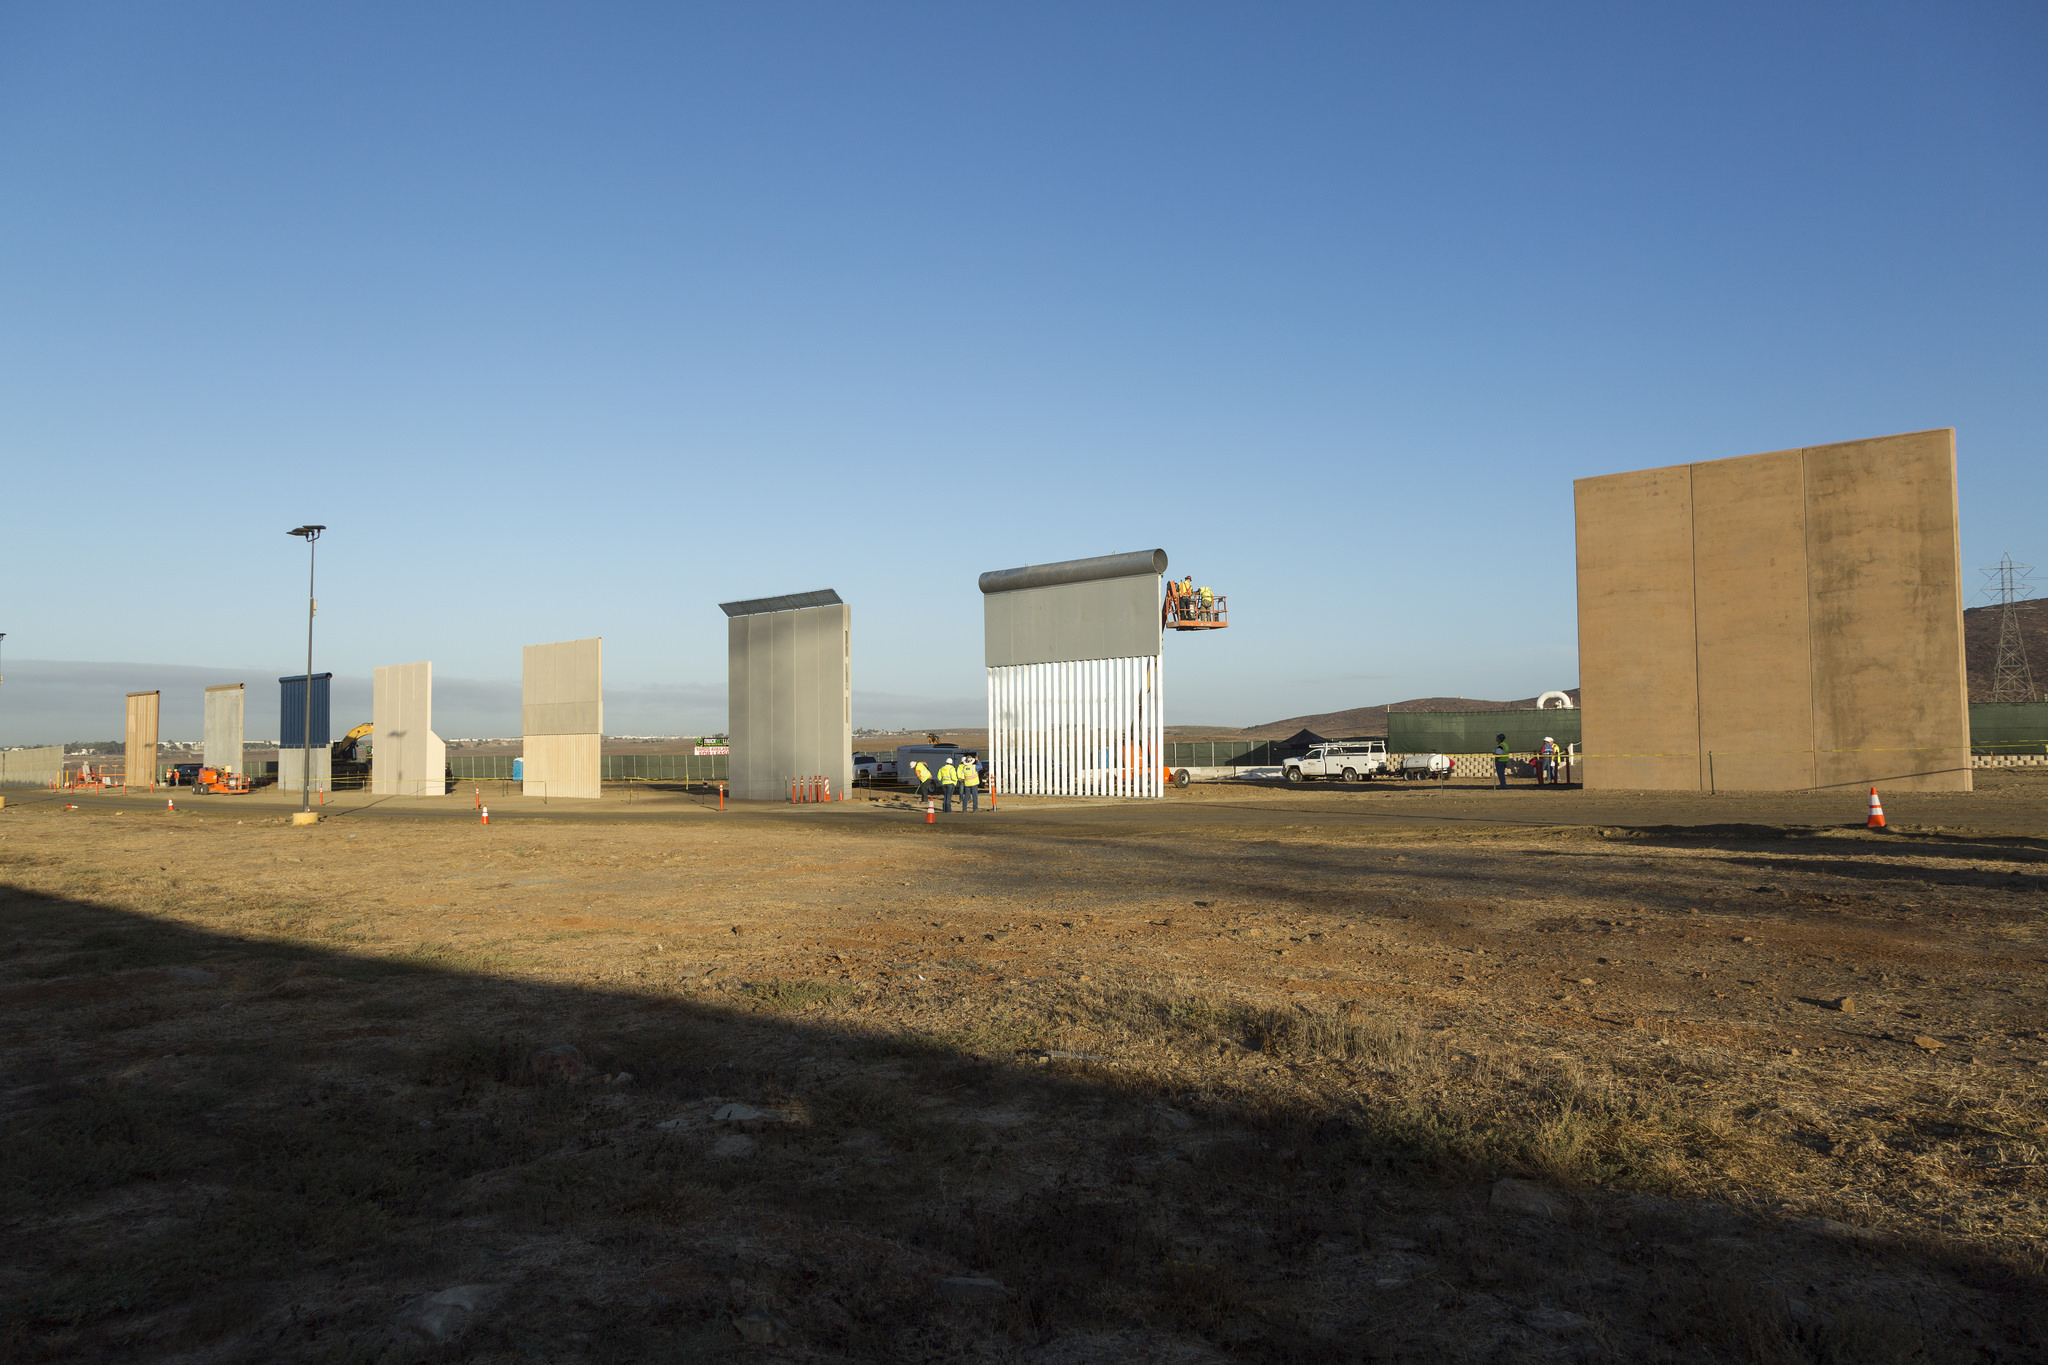 As the Trump administration prepares to potentially declare a national emergency to jumpstart construction of a wall along the U.S.'s southern border—as well as possibly using storm aid funds to do so—the viability of the wall itself has come under fire. In a photo obtained by NBC News, one of the steel bollard border wall prototypes in Otay Mesa, California, was easily breached using an off-the-shelf saw.  @Archpaper